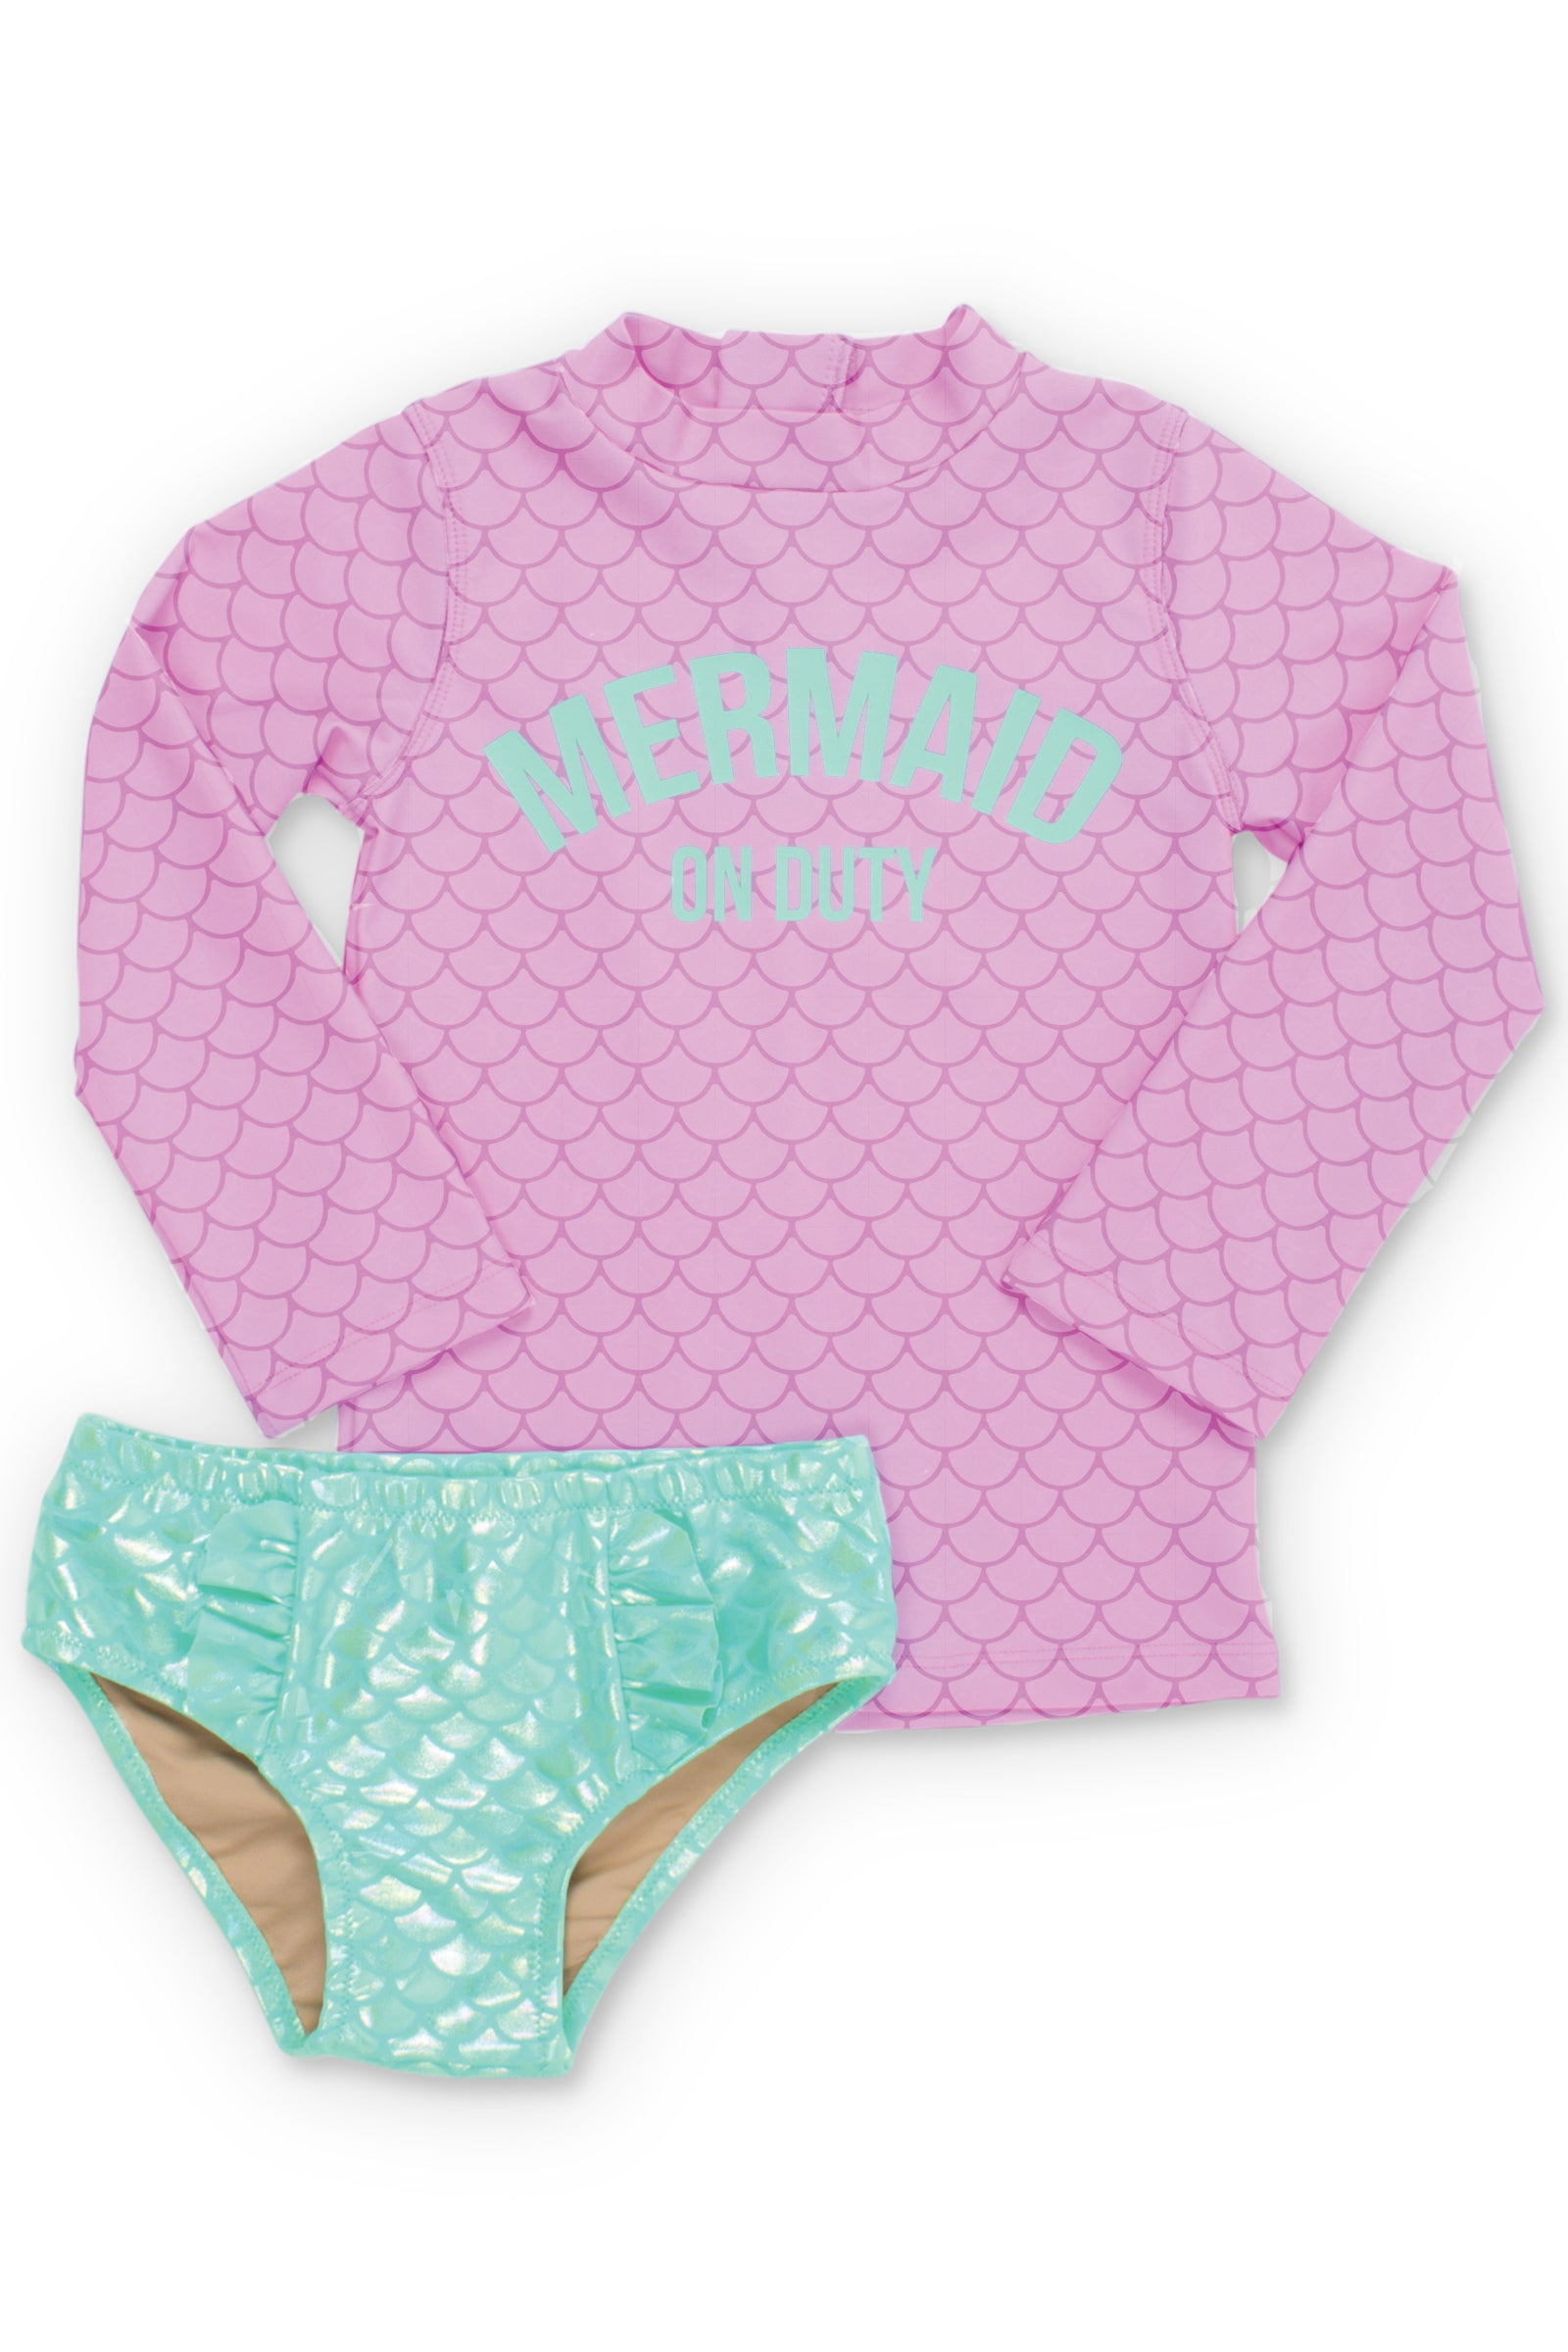 Mermaid Off Duty Rash Guard Set